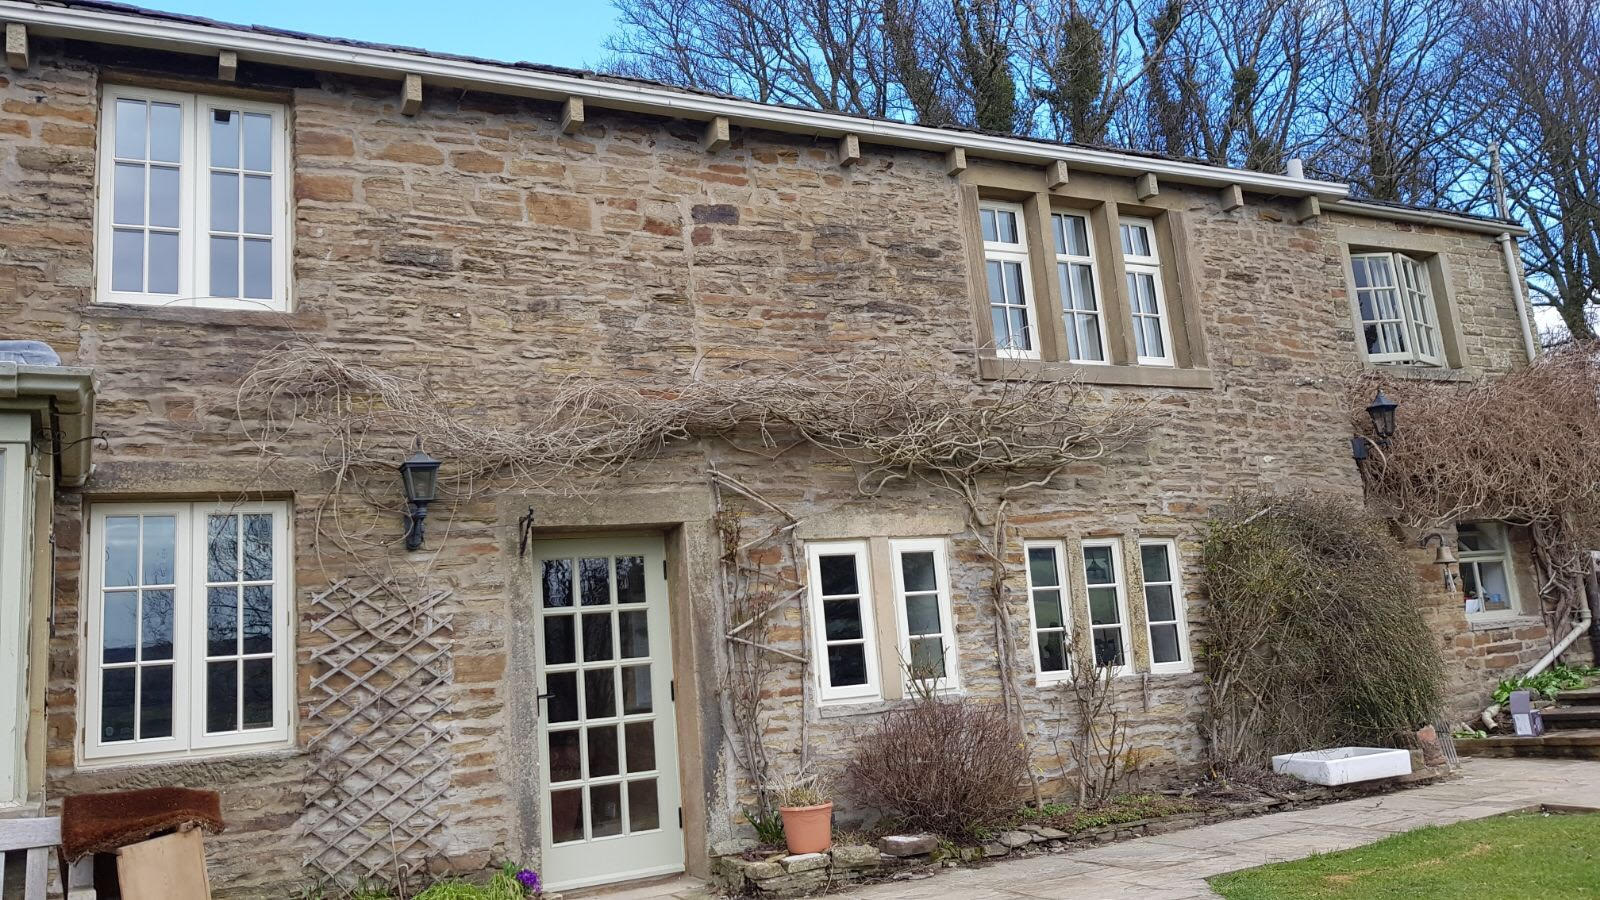 Bespoke Windows in Yorkshire Dales